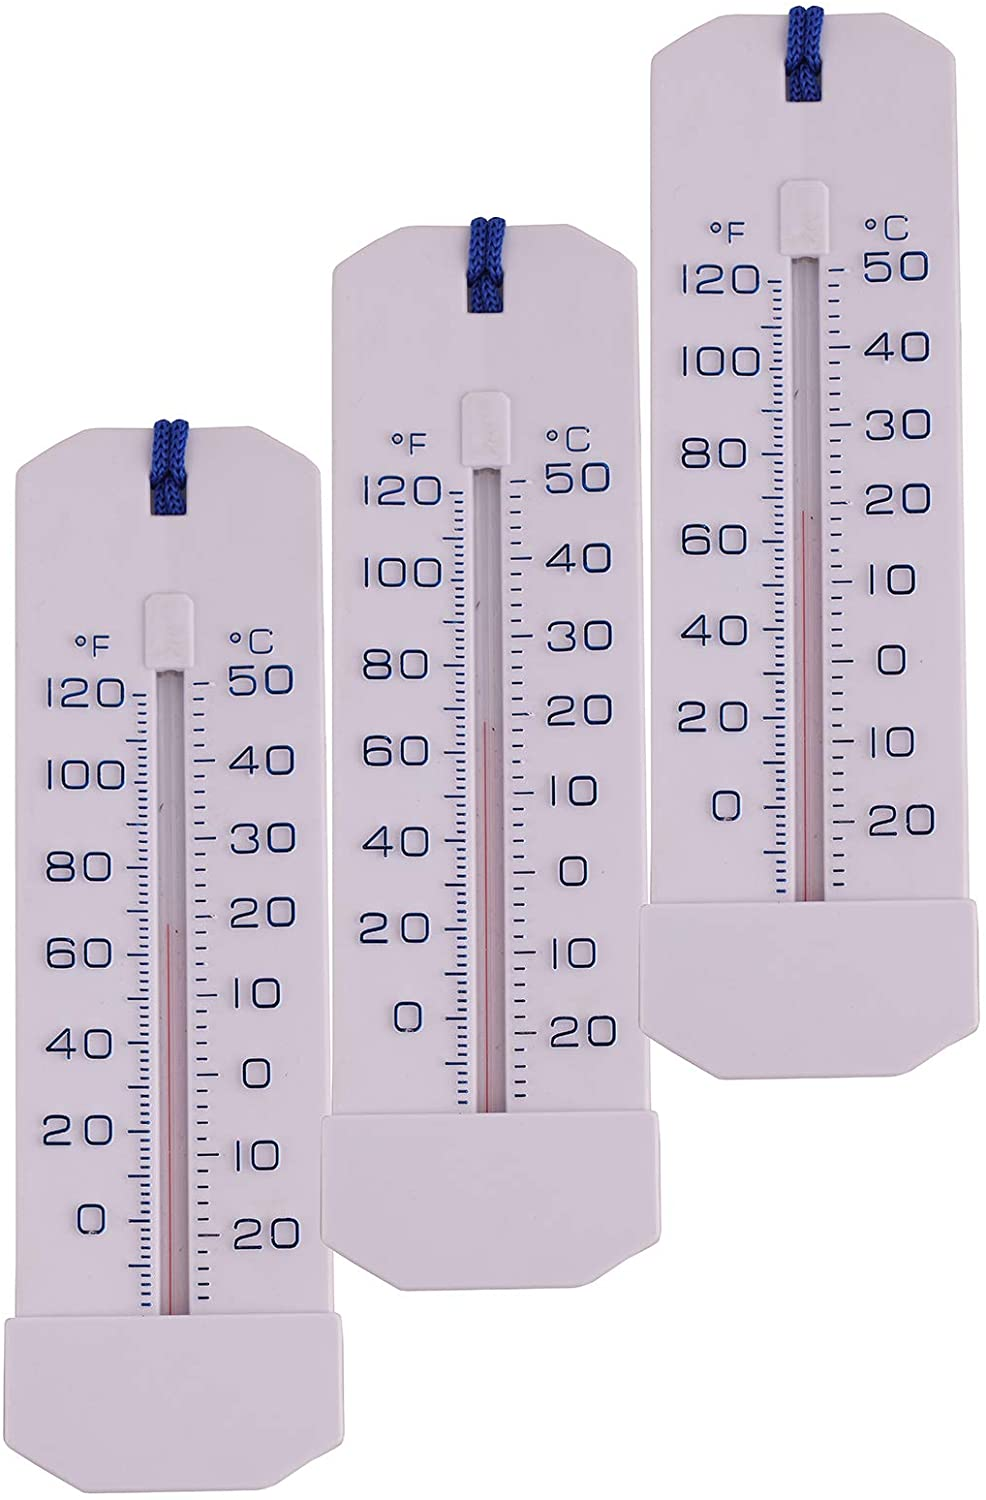 Smartclear thermometer